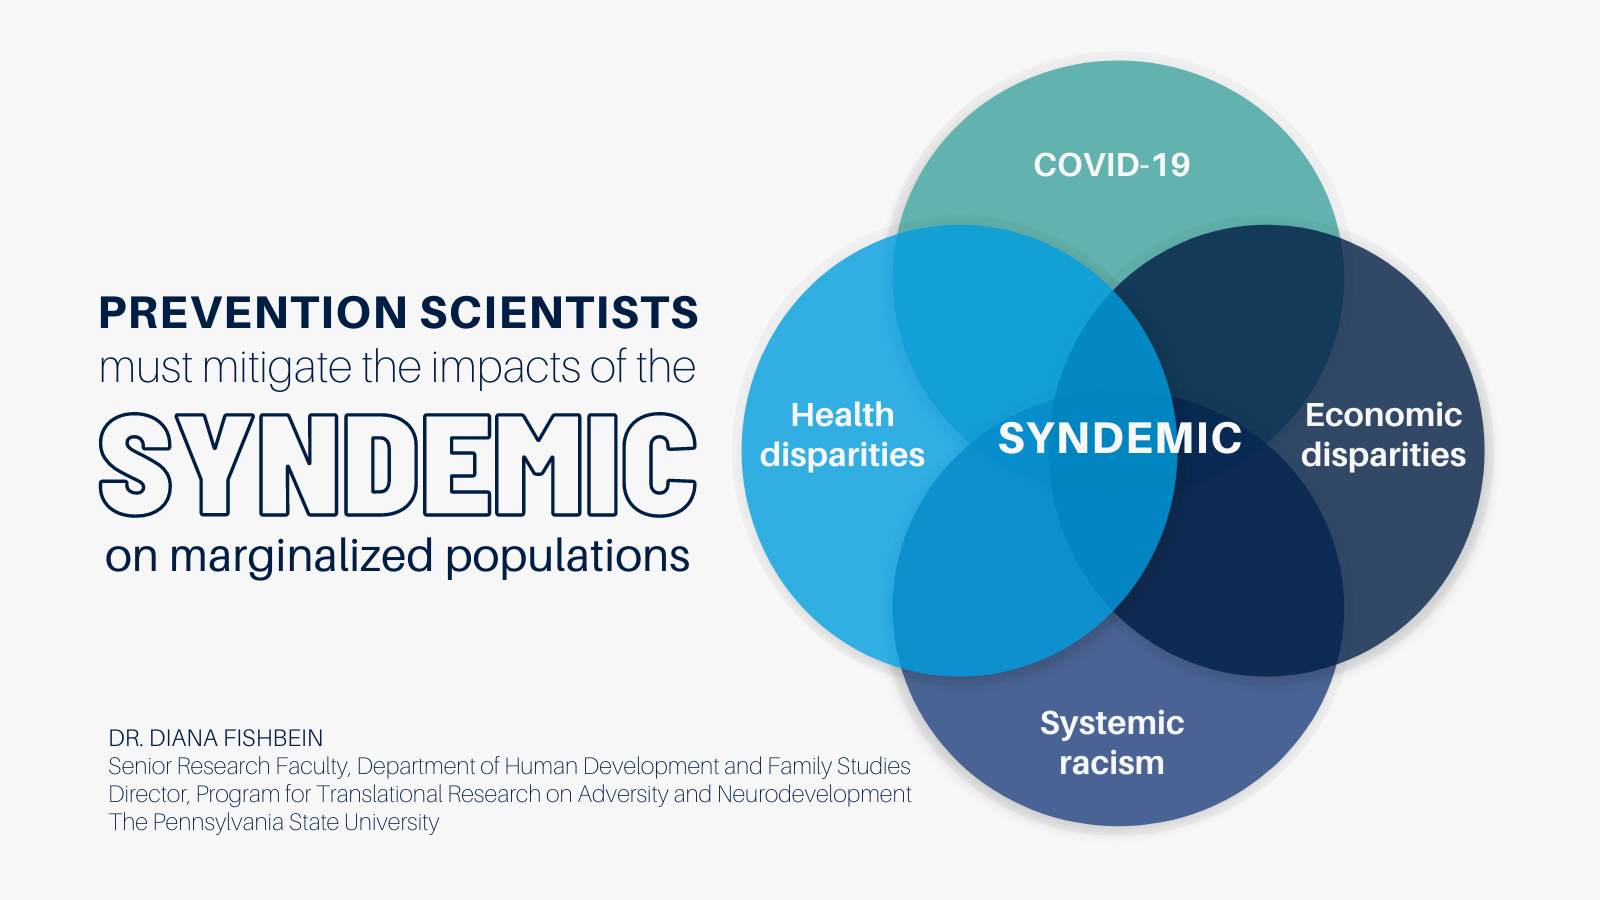 Prevention scientists must mitigate the impact of the syndemic on marginalized populations Health disparities COVID 19 Economic disparities Systemic racism